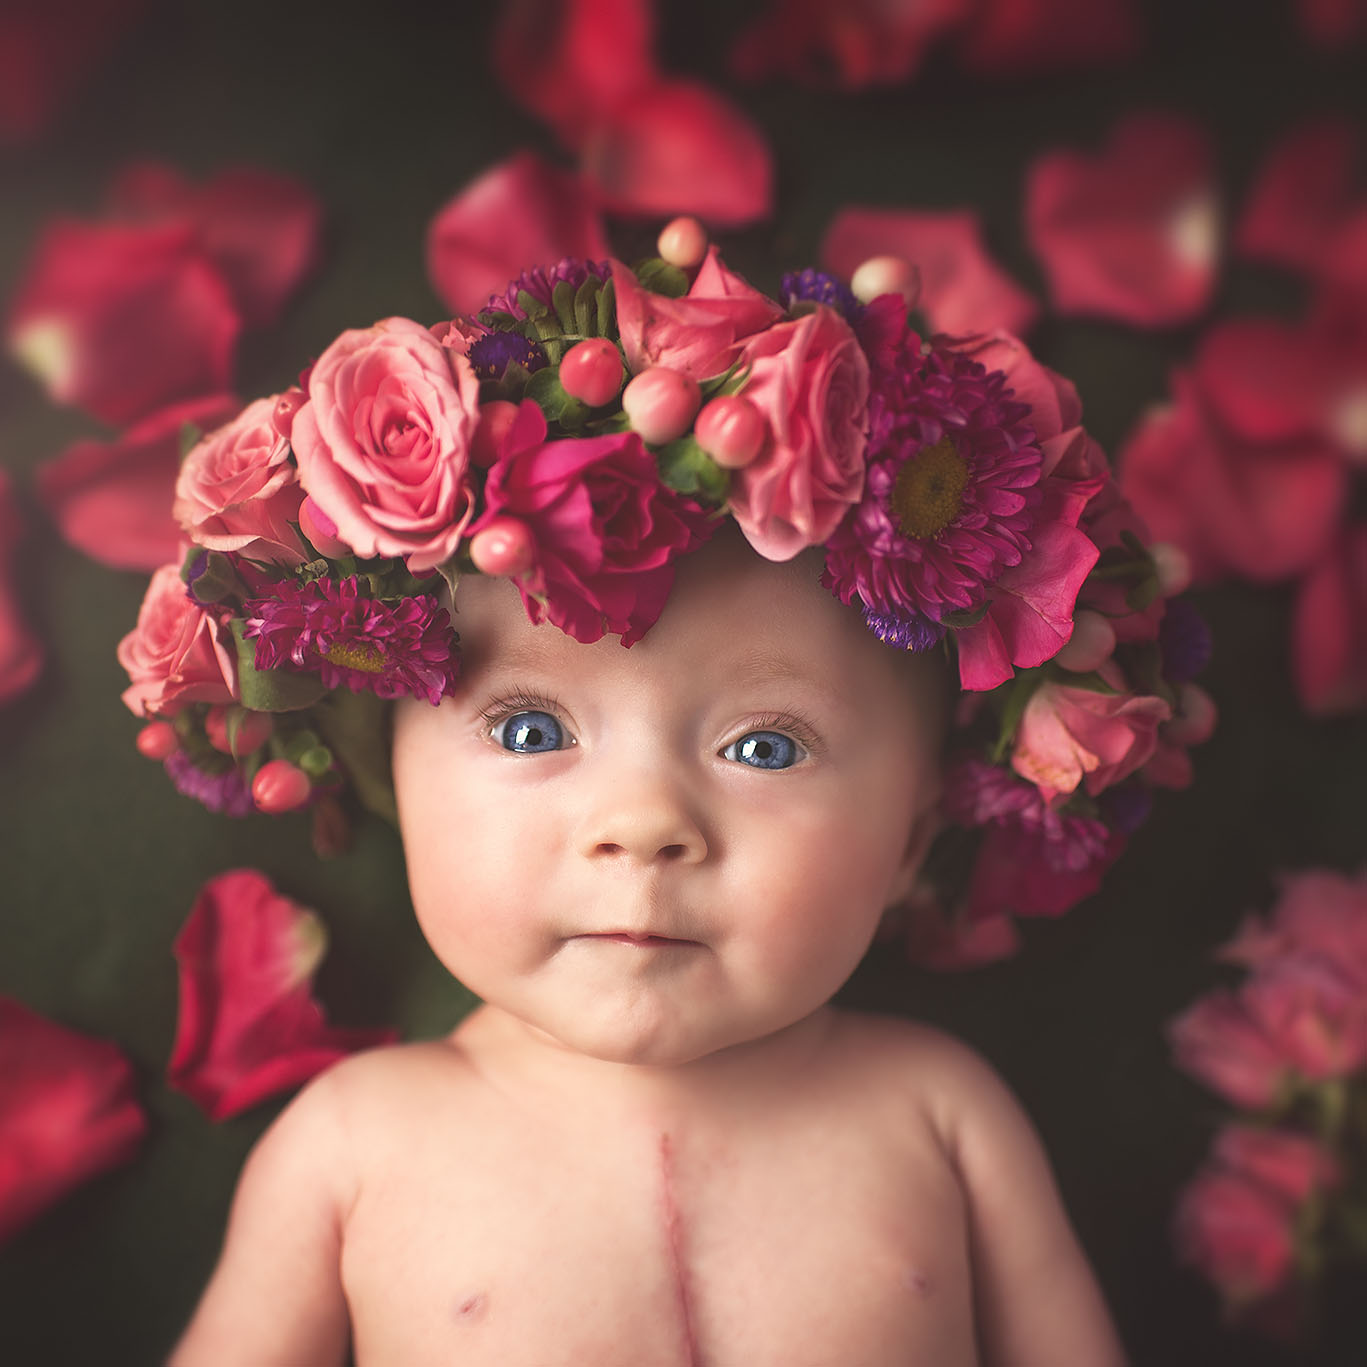 specialty baby crown designed by Natasha Price of Paper Peony Alaska and photo by Laura Stennett Photography